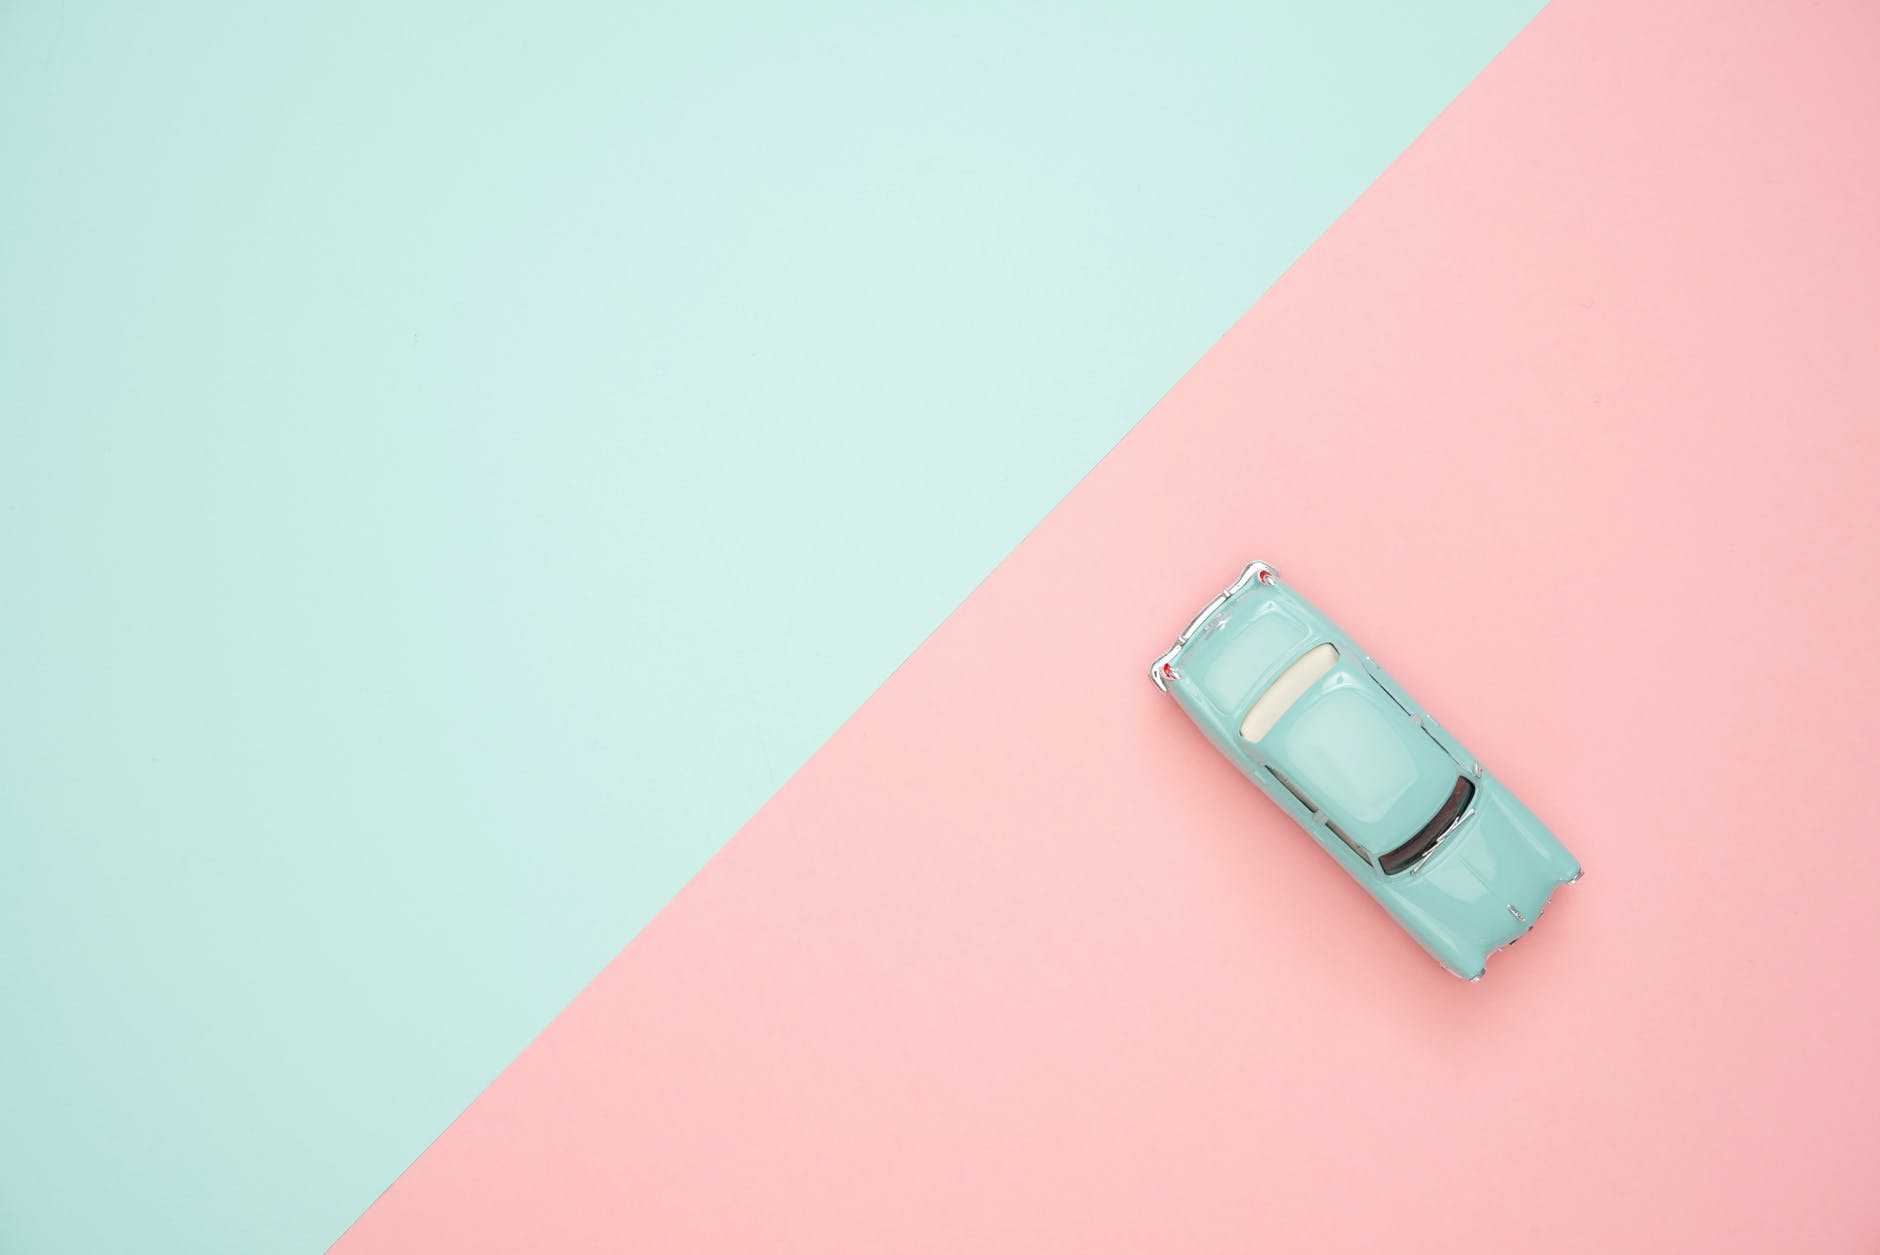 Blue and pink geometric photo with a small blue car